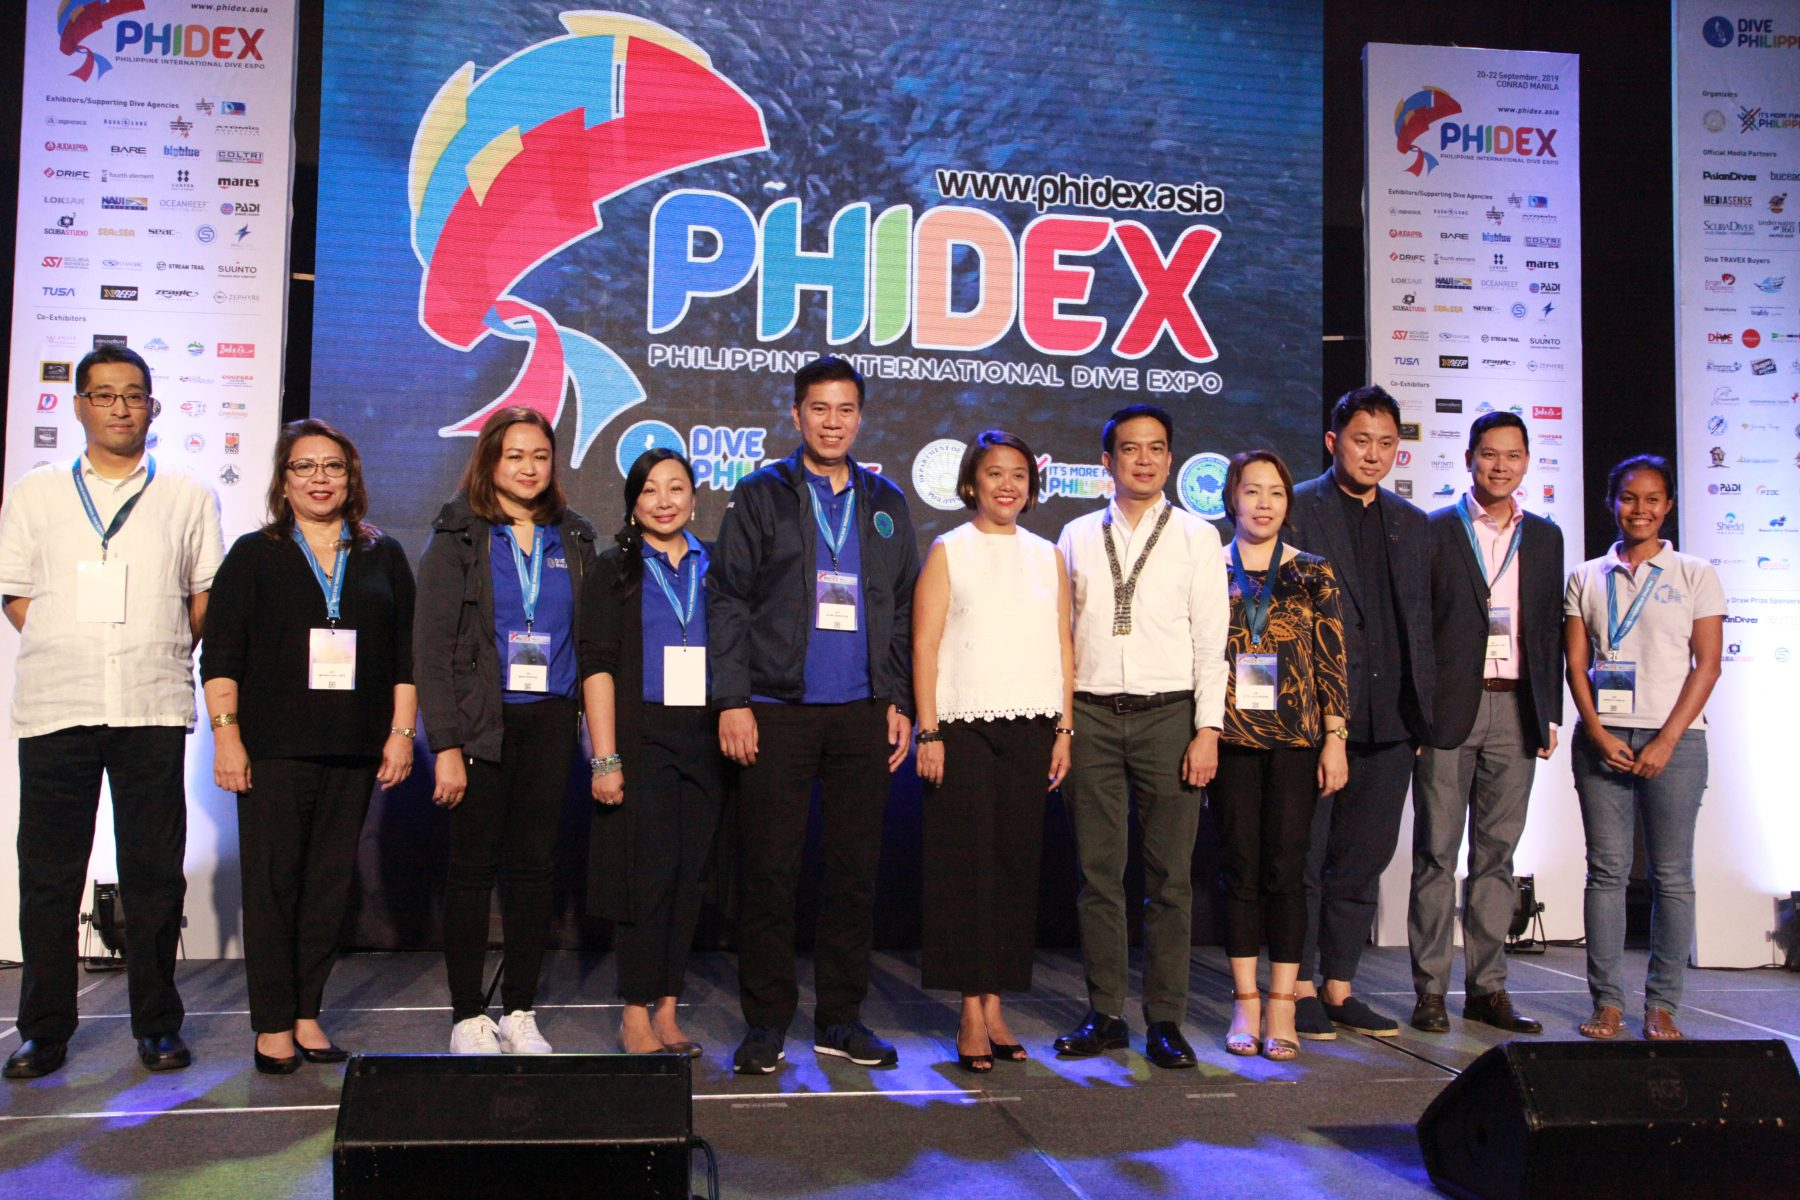 PHIDEX Opening Ceremony Group Photo